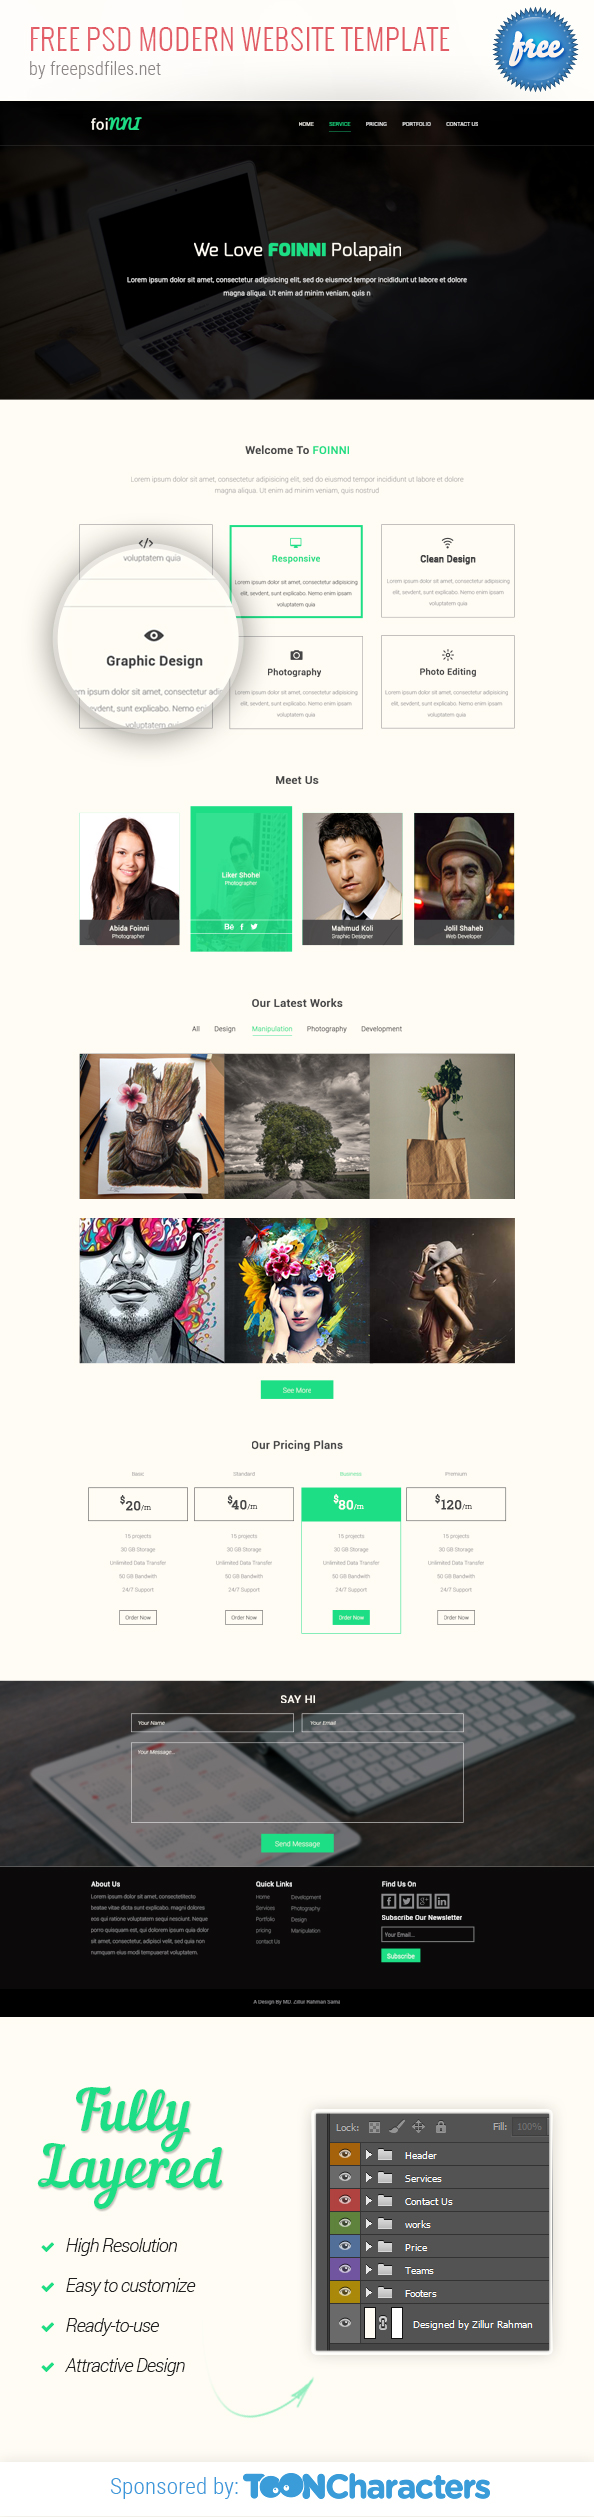 Free PSD Modern Website Template